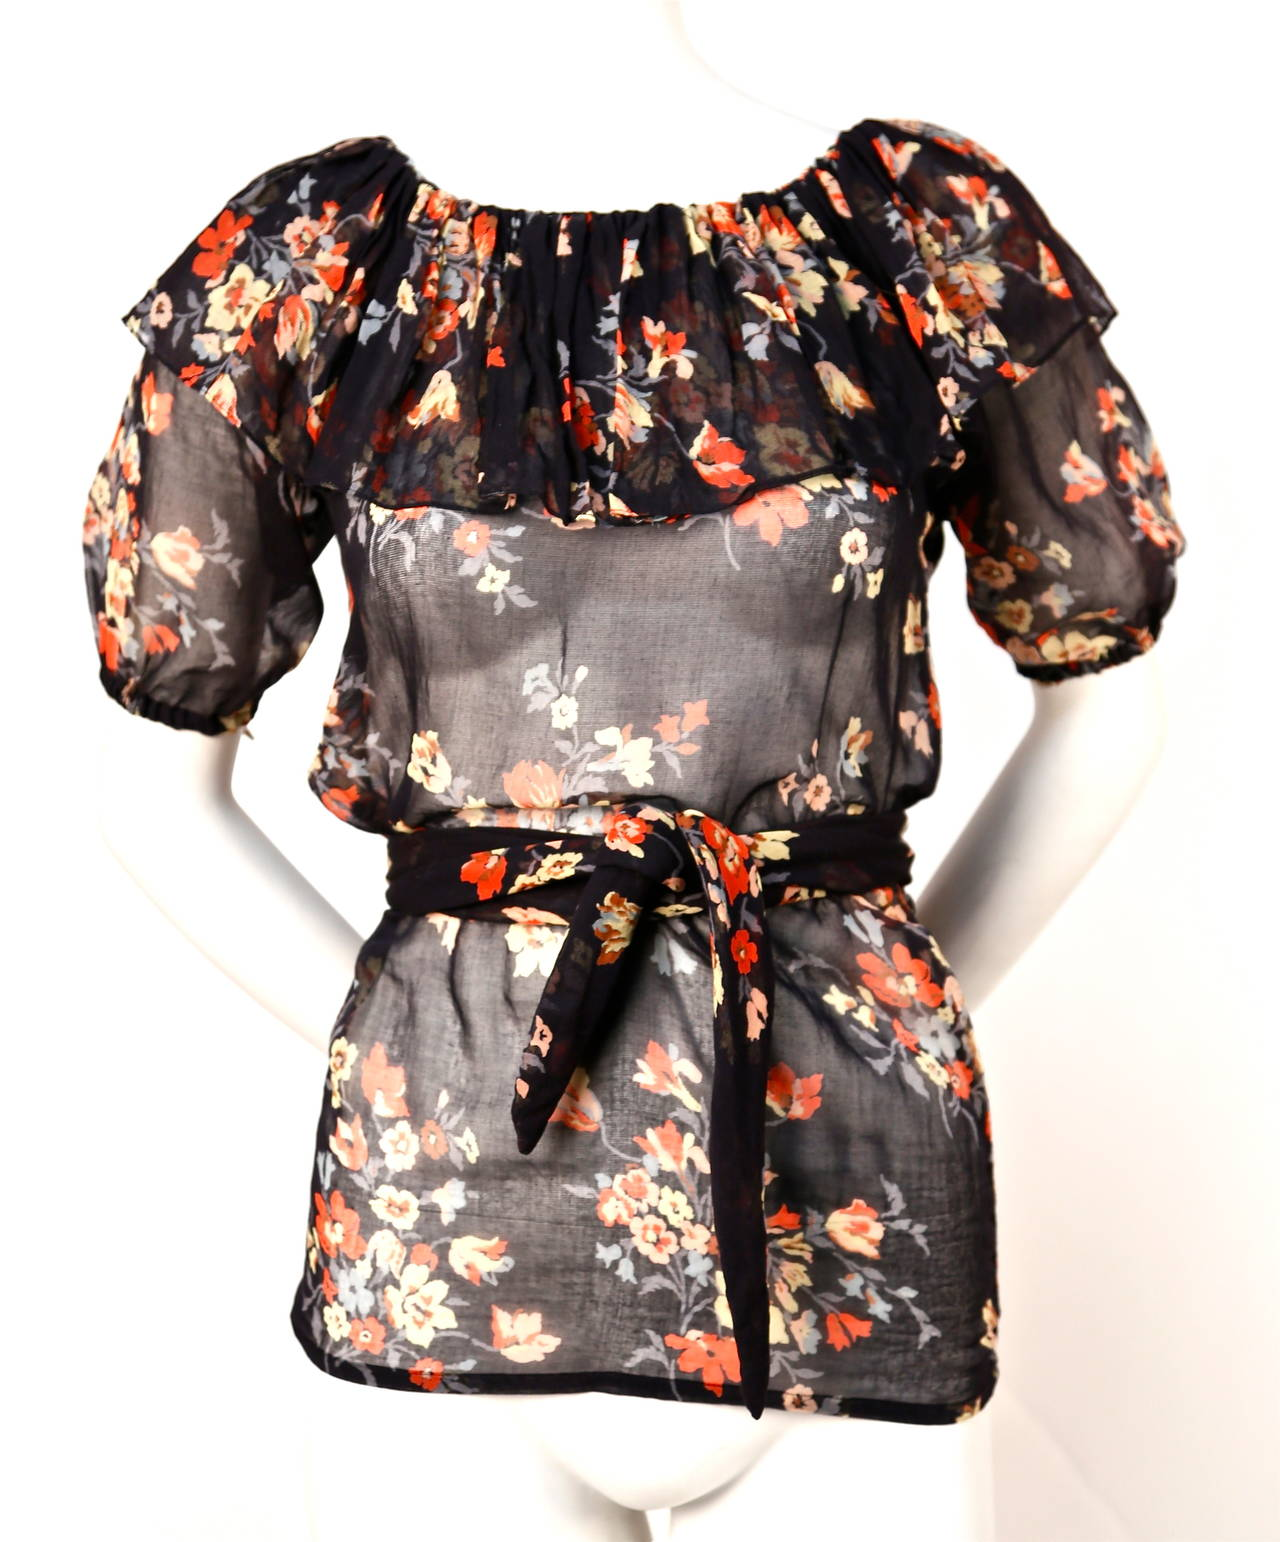 "Semi-sheer cotton floral blouse with flounced neckline and matching belt from Yves Saint Laurent dating to the 1970's. No size is indicated although this will best fit a size XS. Approximate measurements:  hem width 34"" and length 26"". Can be worn"